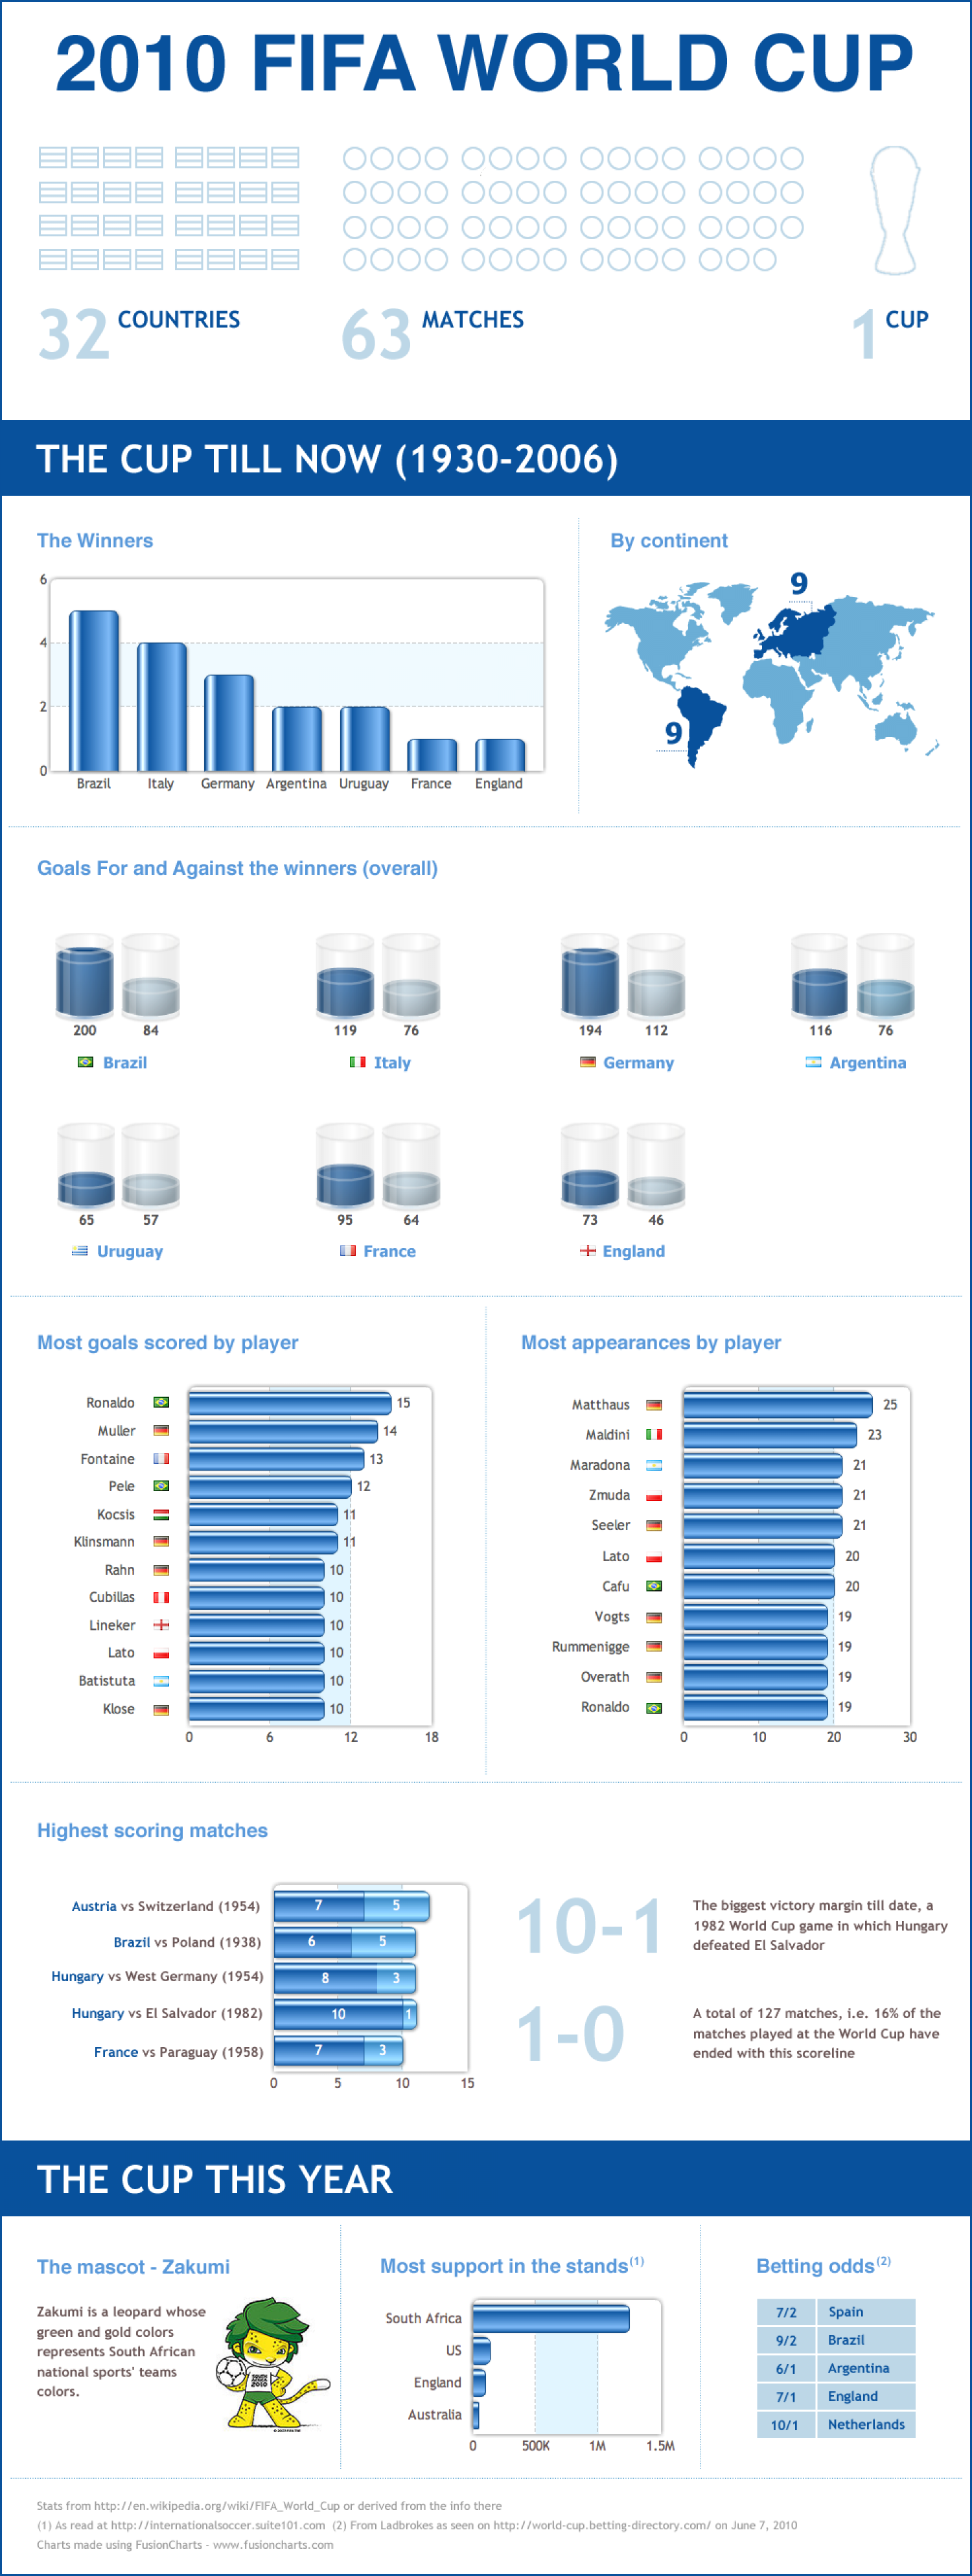 FIFA World Cup 2010 - Winners, Highest Scores, Betting Odds and more Infographic